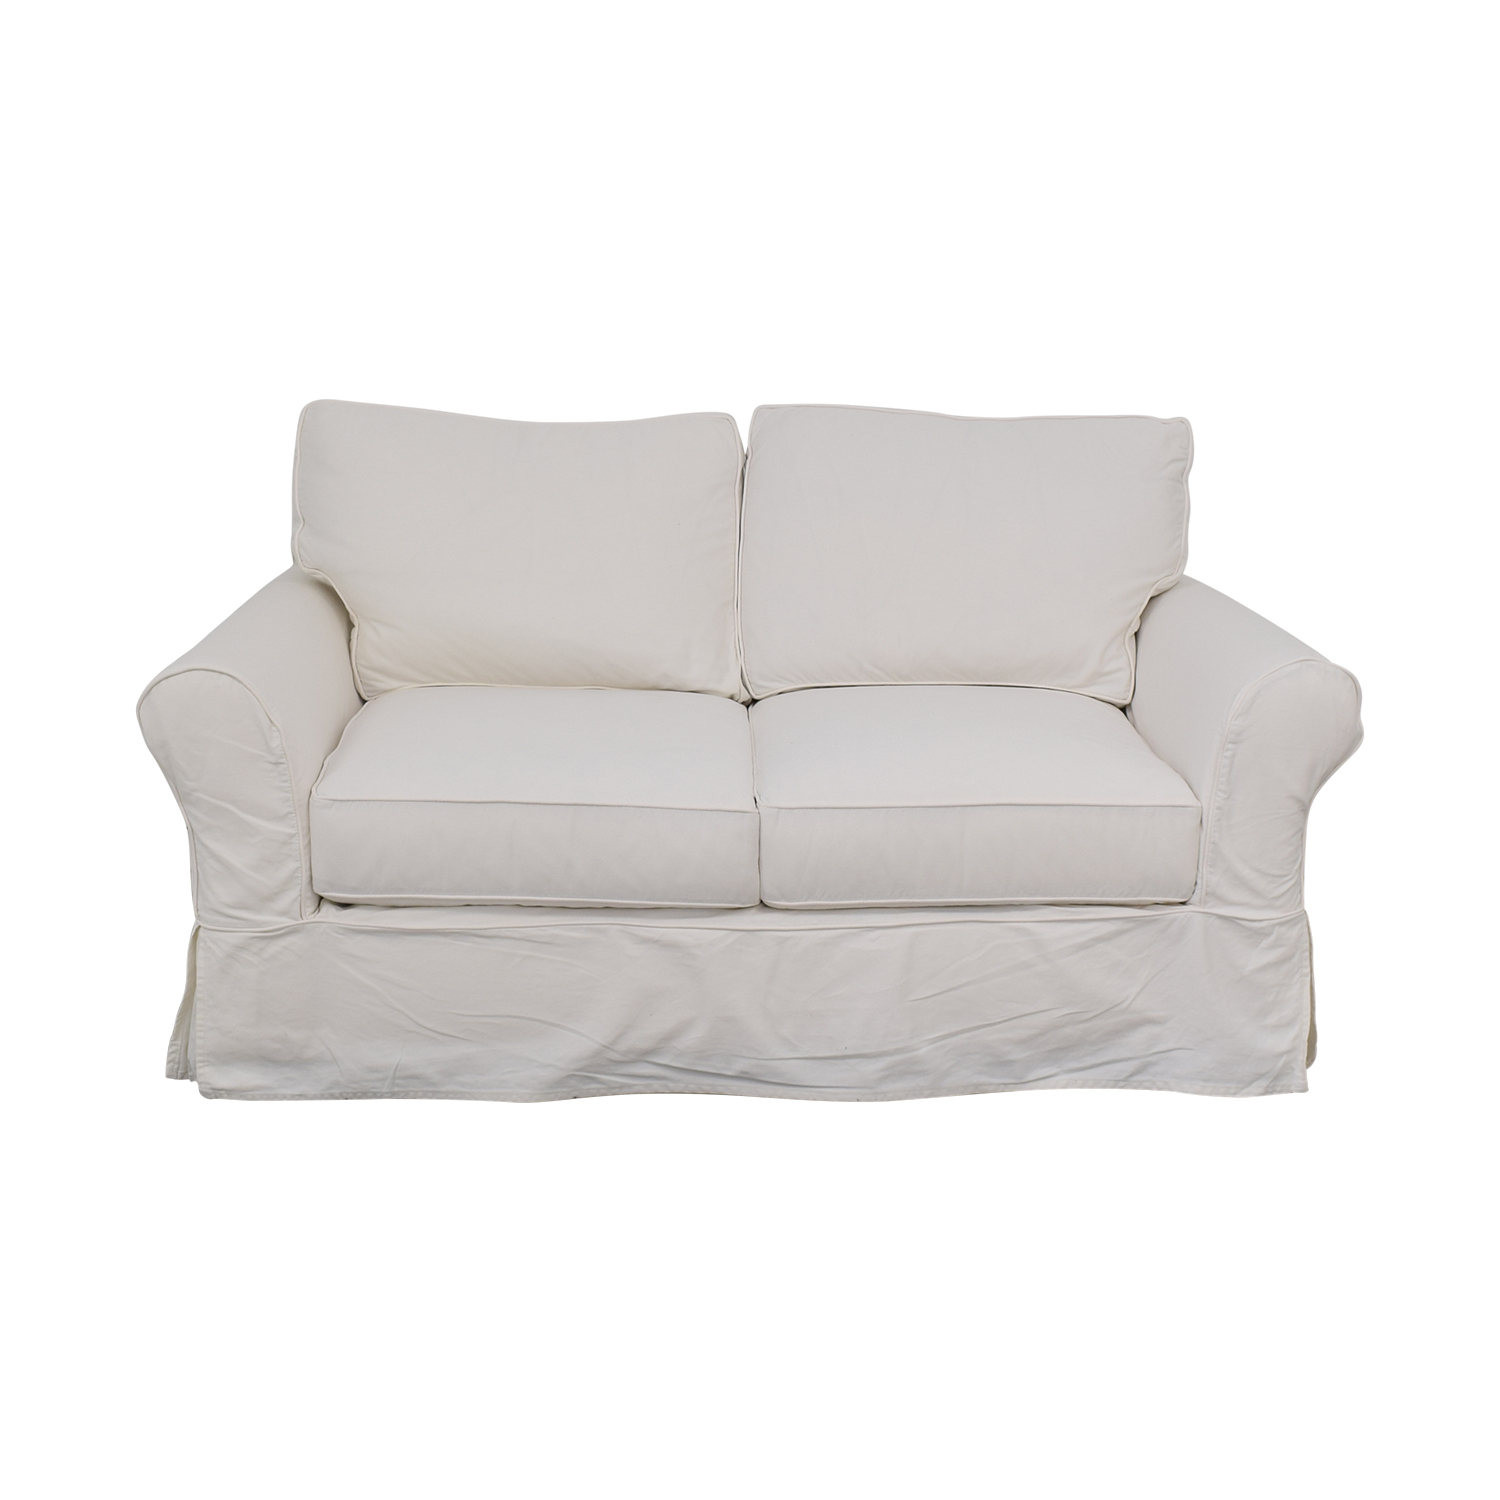 Awesome 80 Off Pottery Barn Pottery Barn Comfort Roll Arm Slipcovered Loveseat Sofas Ibusinesslaw Wood Chair Design Ideas Ibusinesslaworg